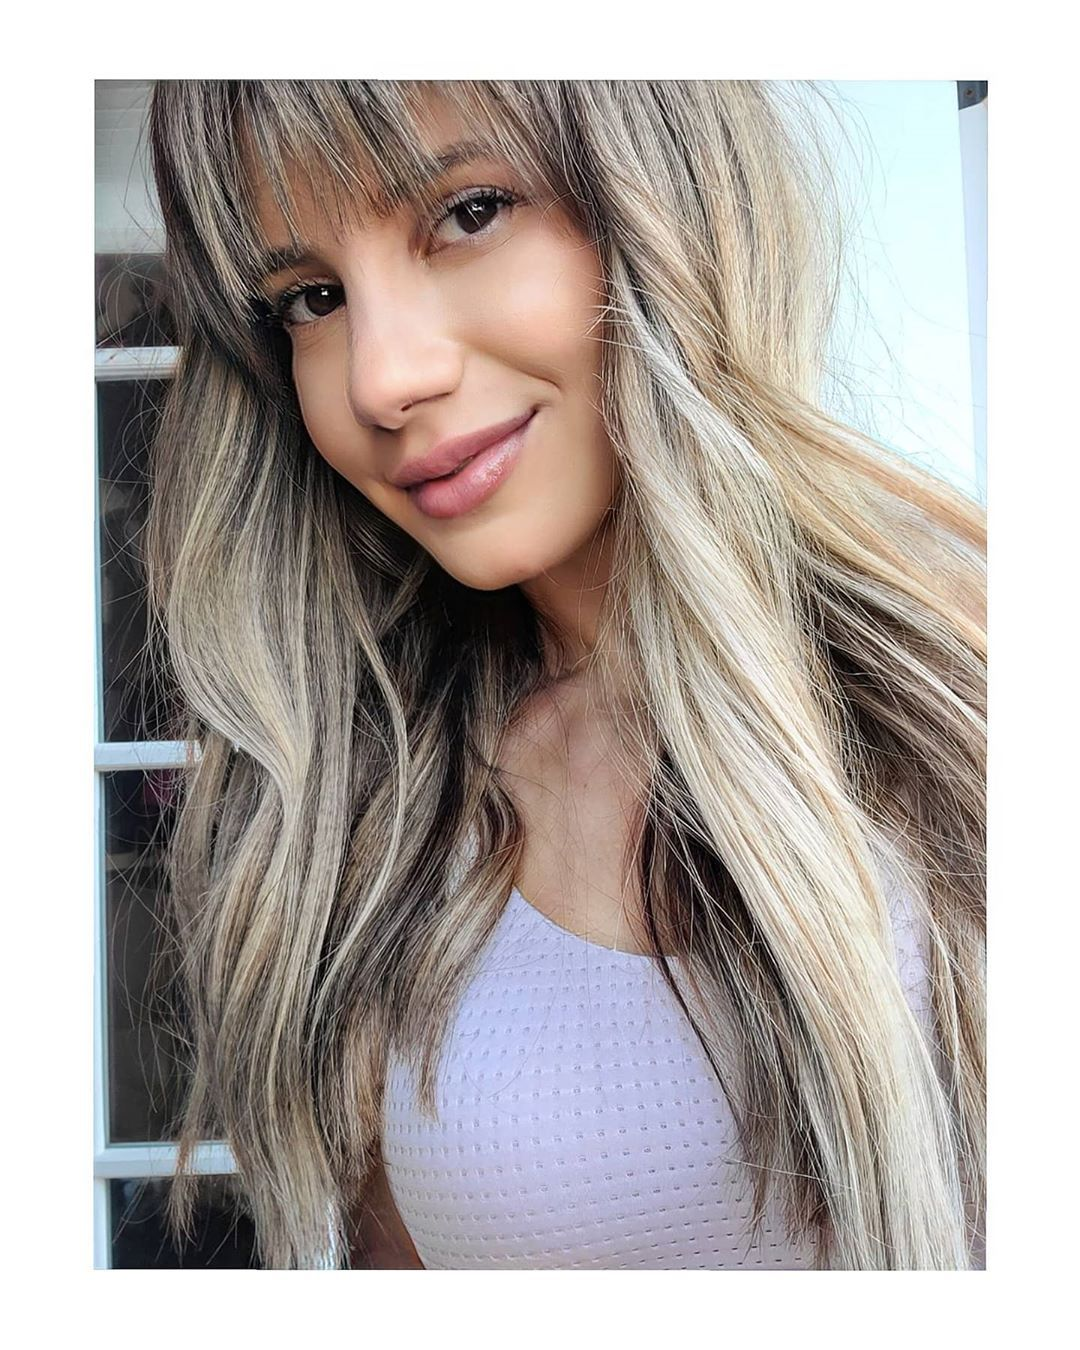 New hair color is always a good therapy ✨  #fellinggood #hair #blondehair #beautiful #happy #love #summer #instagood